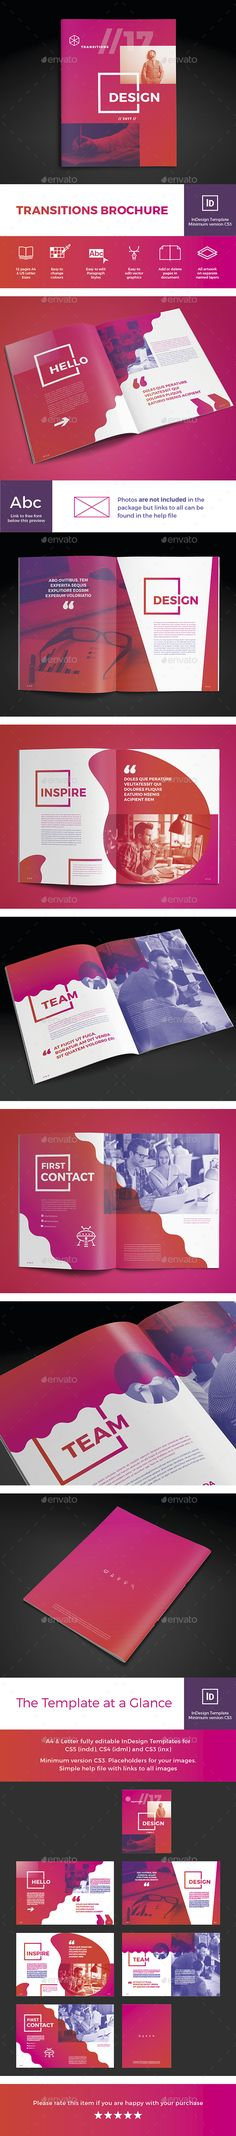 Transitions Brochure Template InDesign INDD